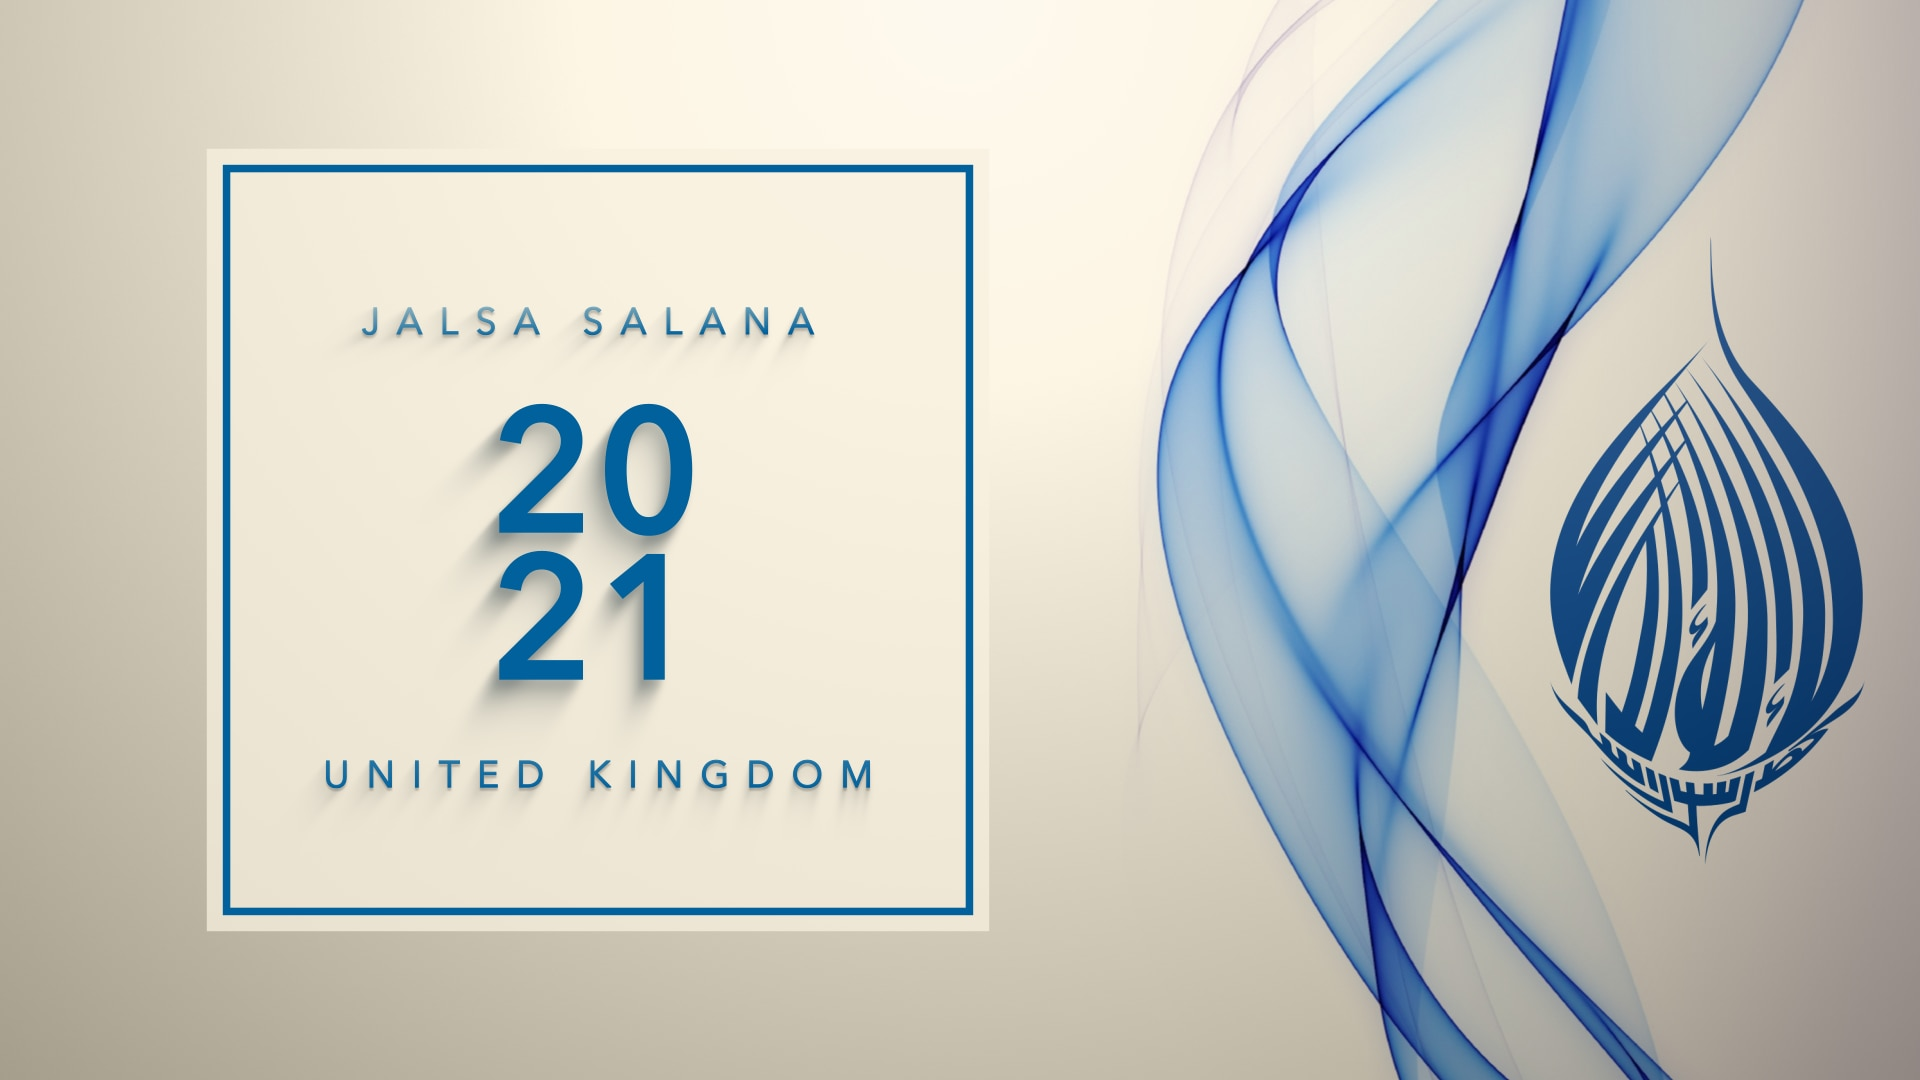 Jalsa Salana | The Review of Religions